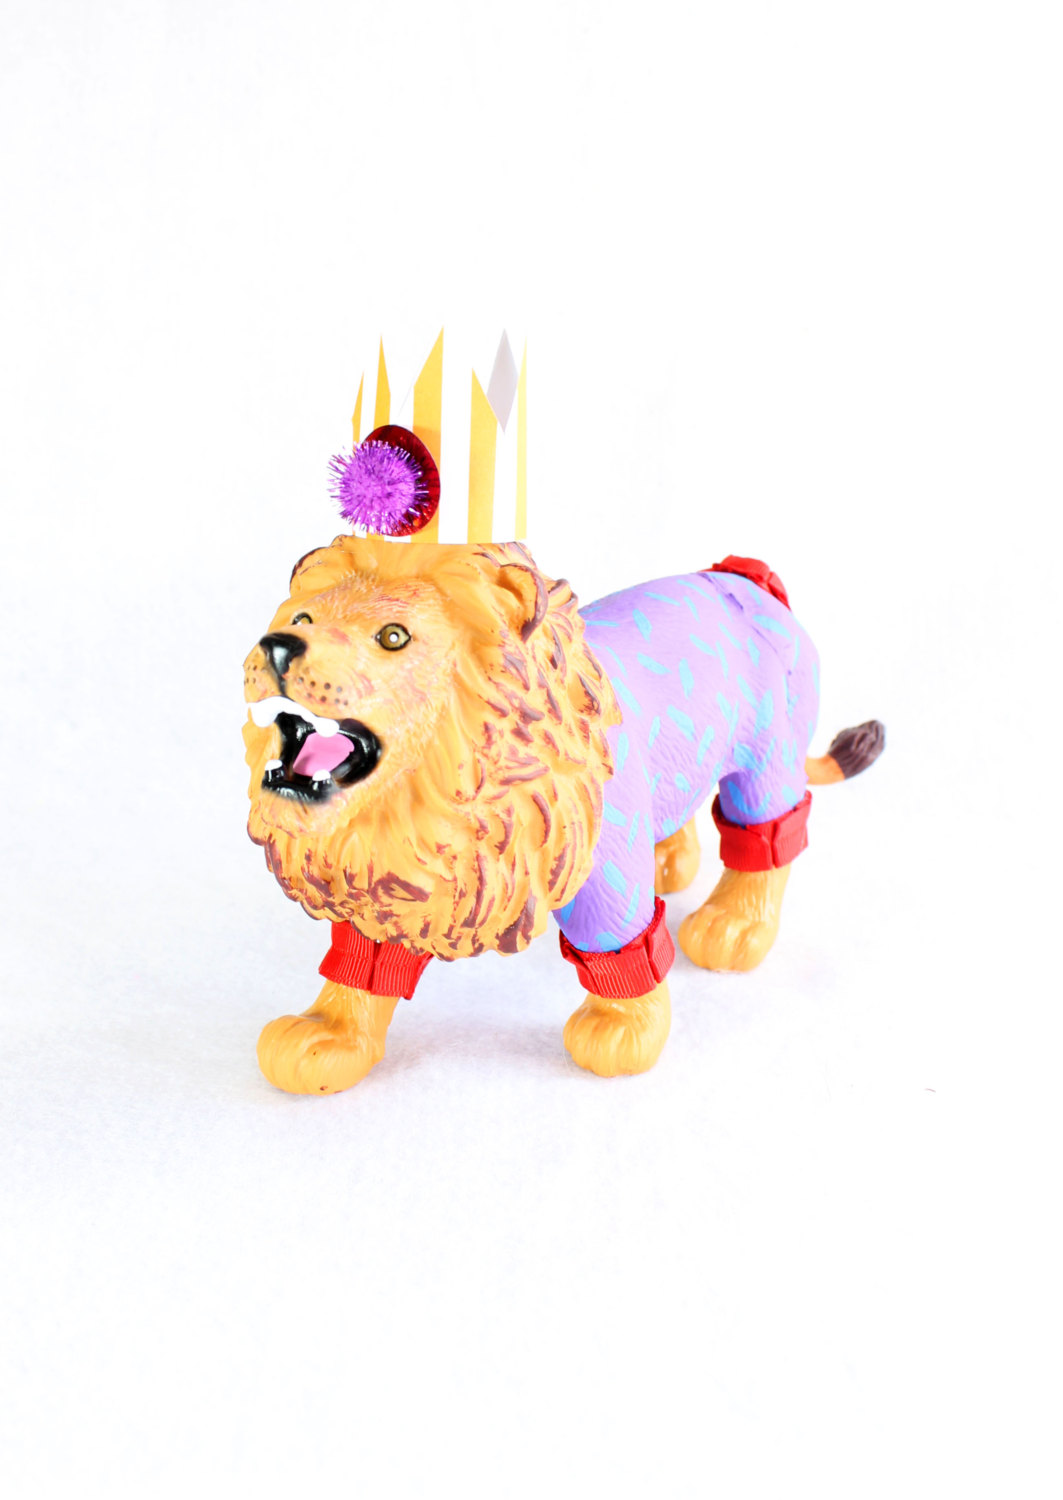 Lion Circus Cake Topper / Lion in Crown Birthday Party Decoration from Painted Parade / see more on www.GiggleHearts.com